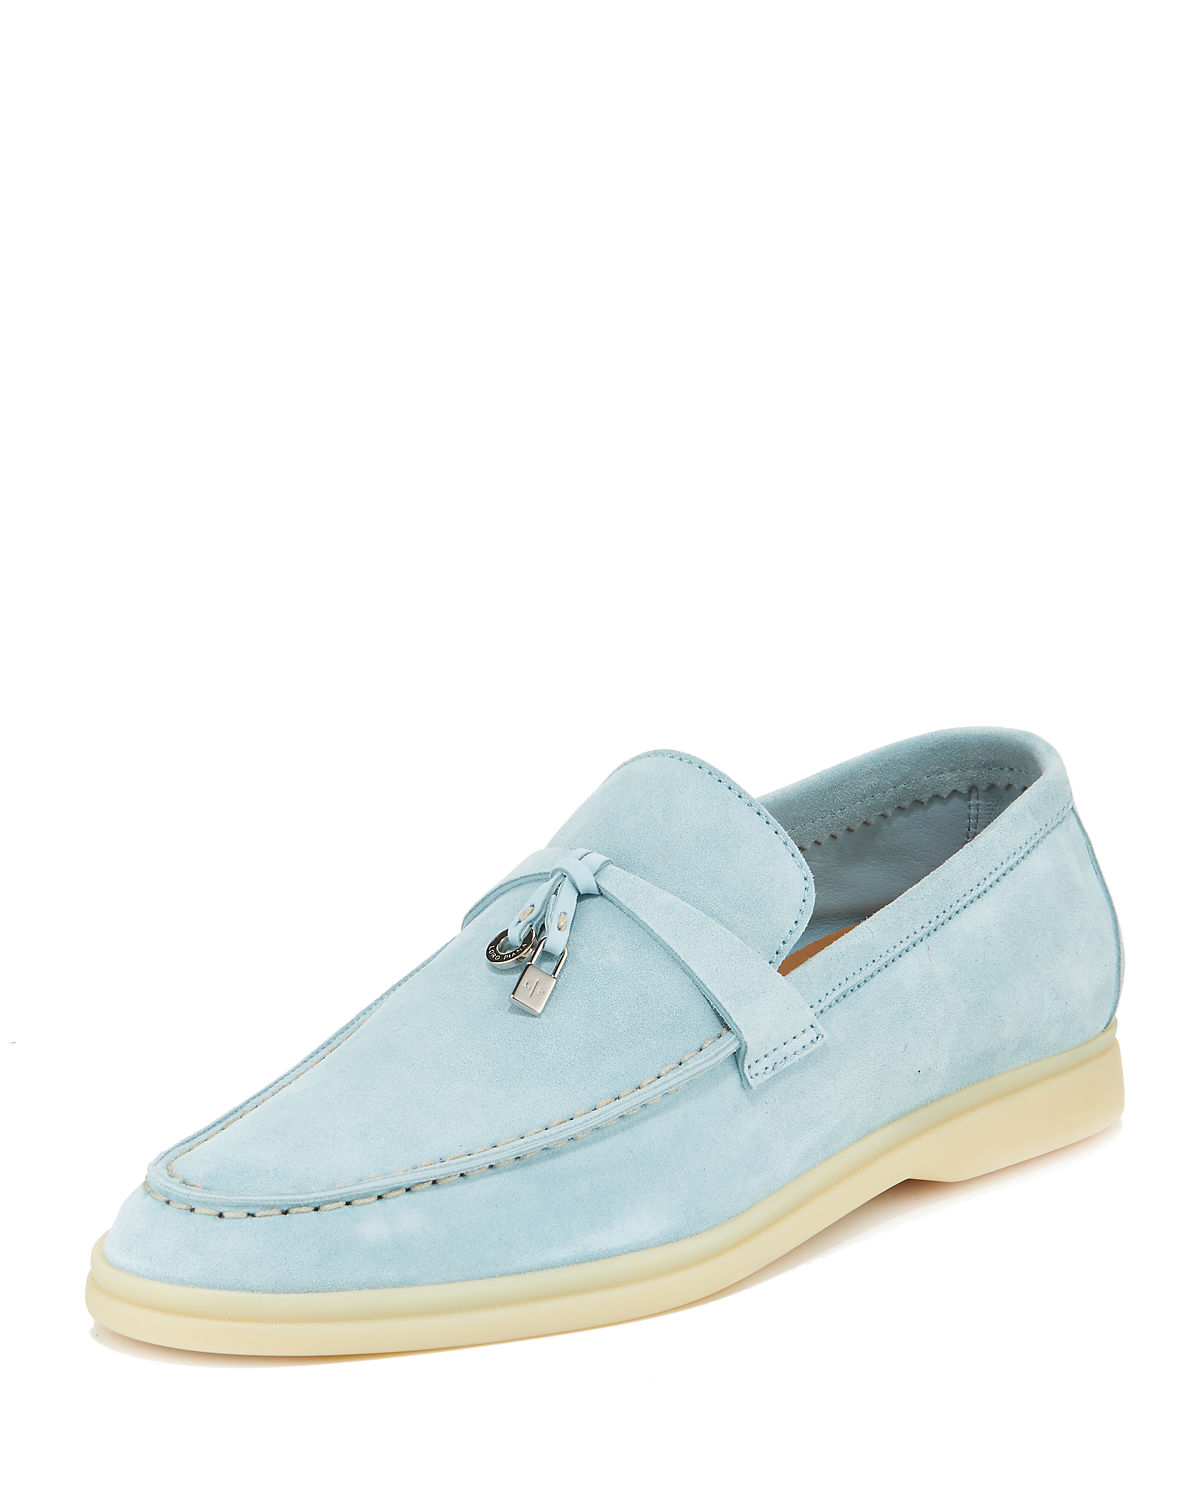 4d1db73a196 Loro Piana Summer Charms Walk Suede Loafers In Cerulean